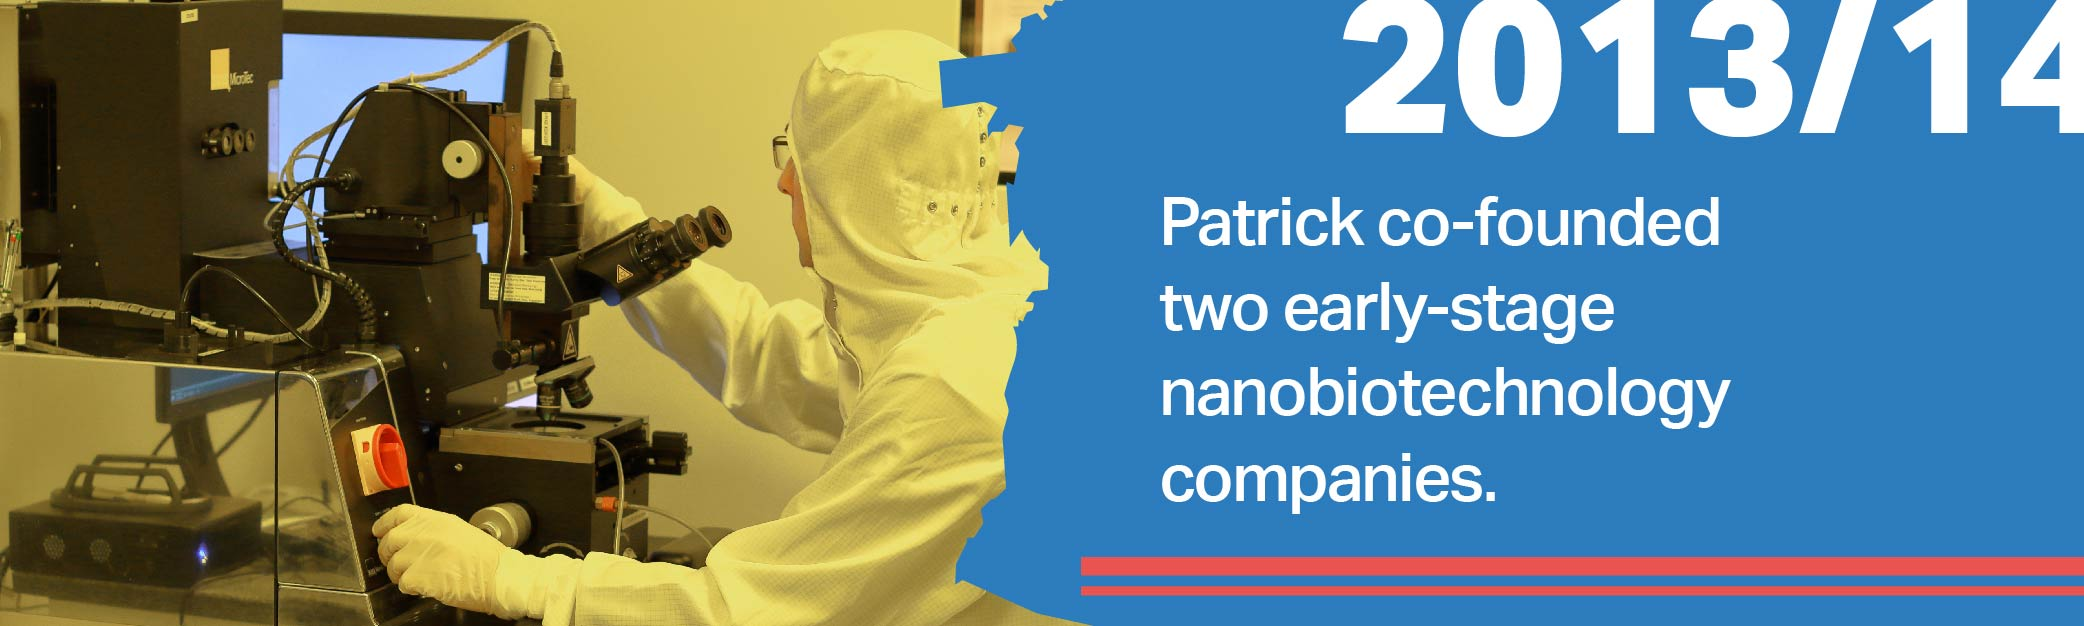 Patrick co-founded  two early-stage  nanobiotechnology  companies.